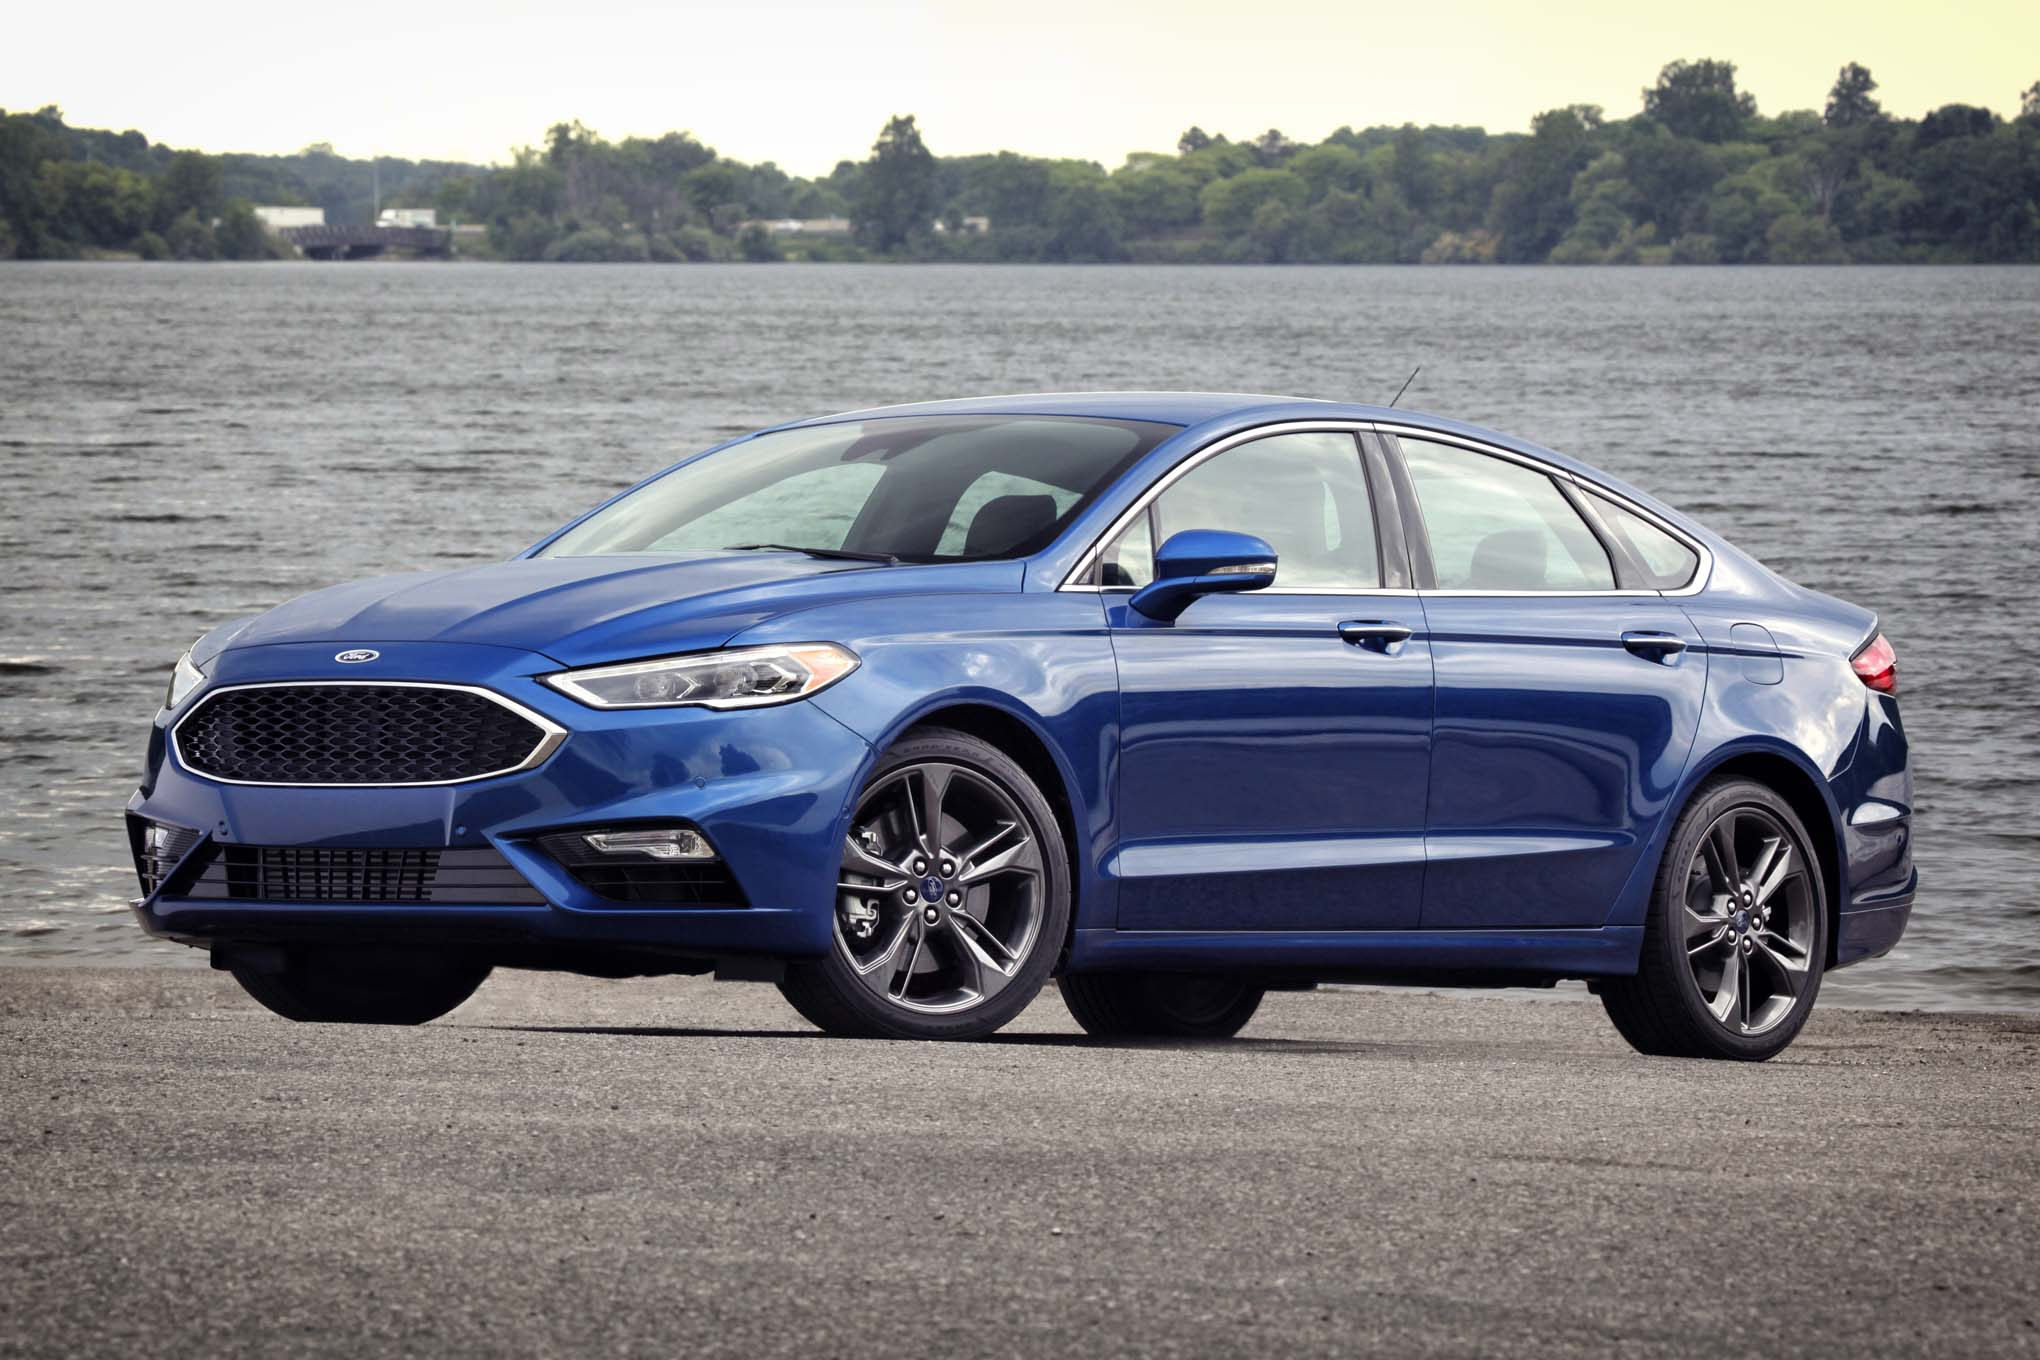 2017 Ford Fusion Sport front three quarter 2017 ford fusion review 2016 ford fusion wiring diagram at bayanpartner.co